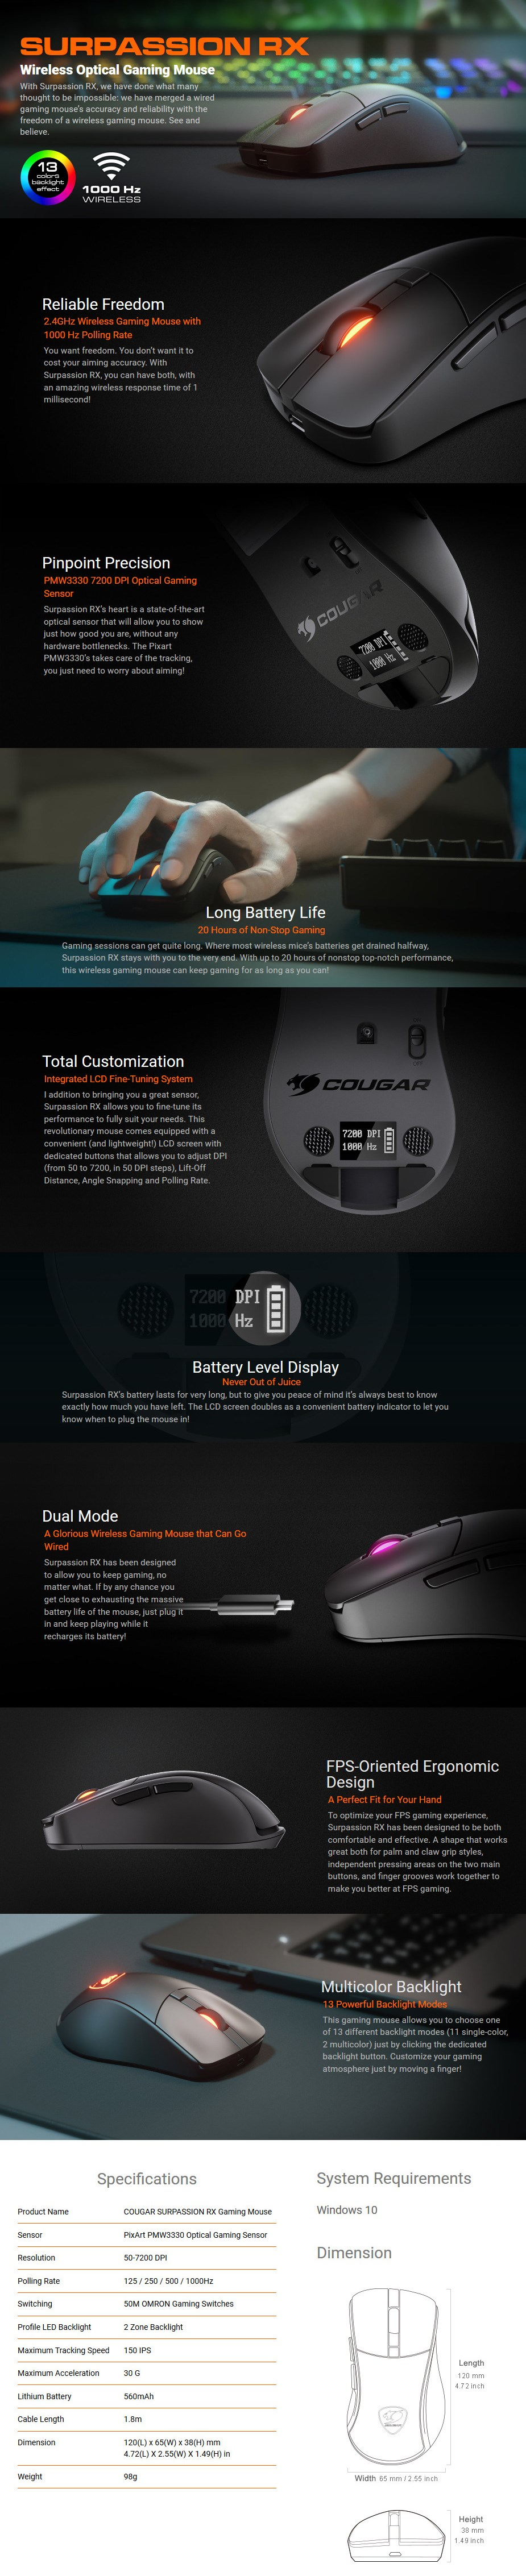 Cougar Surpassion RX Wireless Optical Gaming Mouse - Overview 1